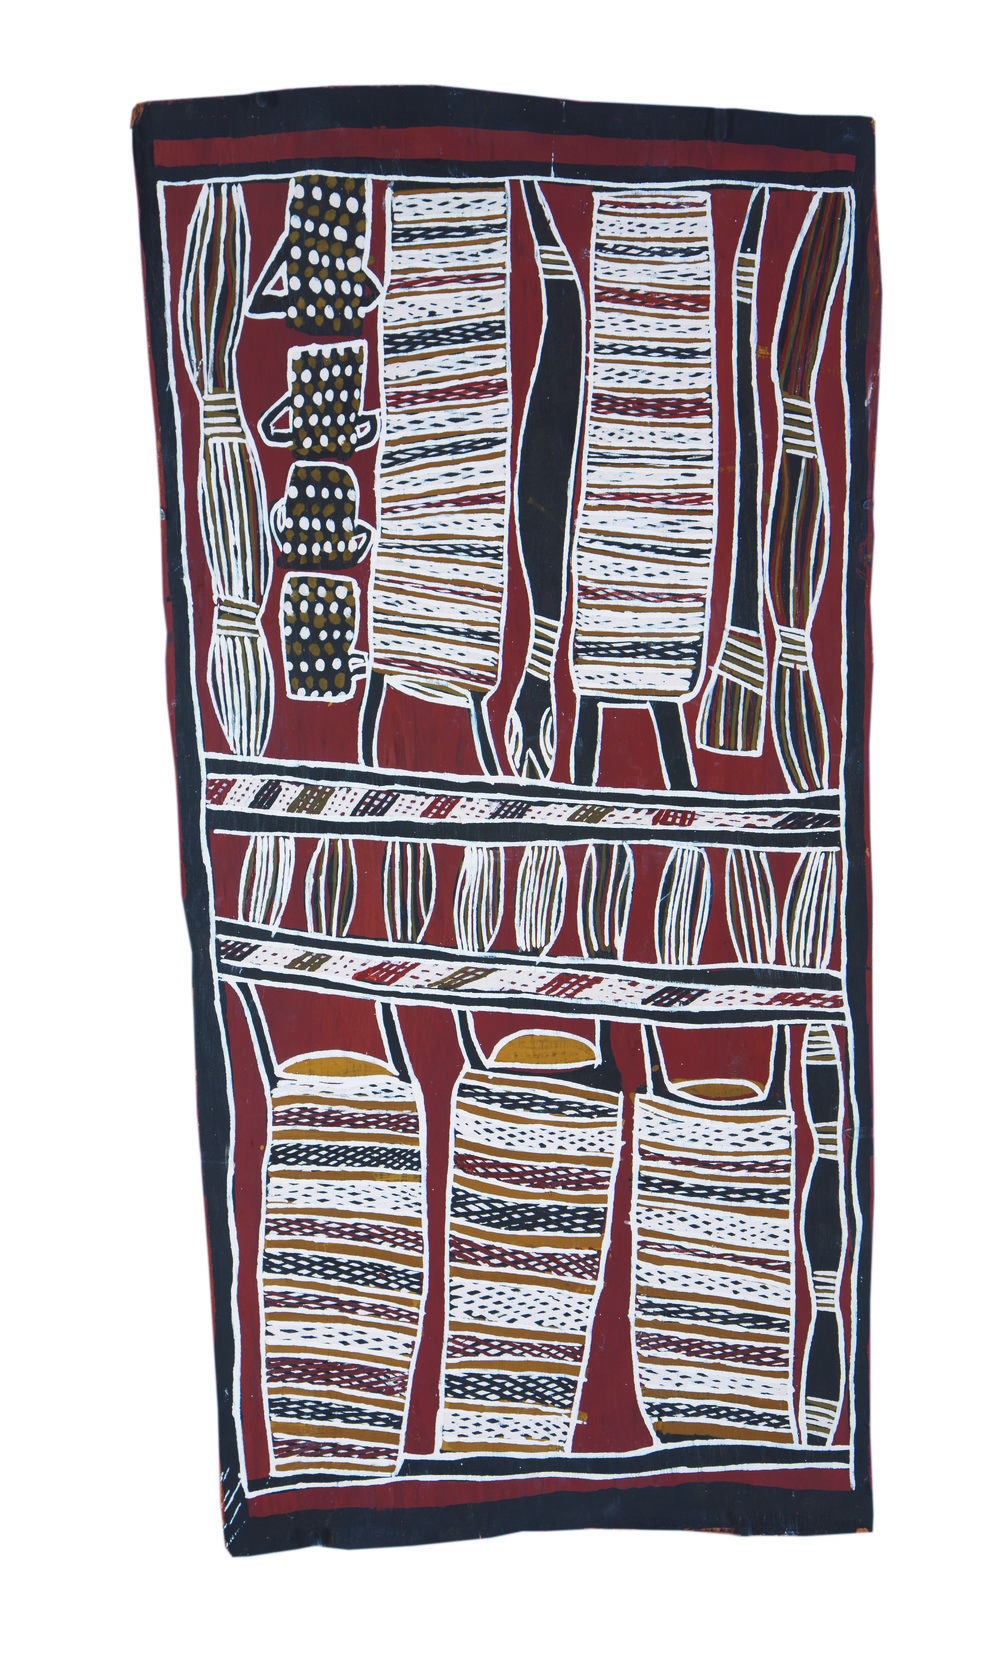 Nonggirrnga Marawili  Hunting  Natural earth pigments on bark 71 x 36cm  Buku Larrnggay Mulka #4049A   EMAIL INQUIRY